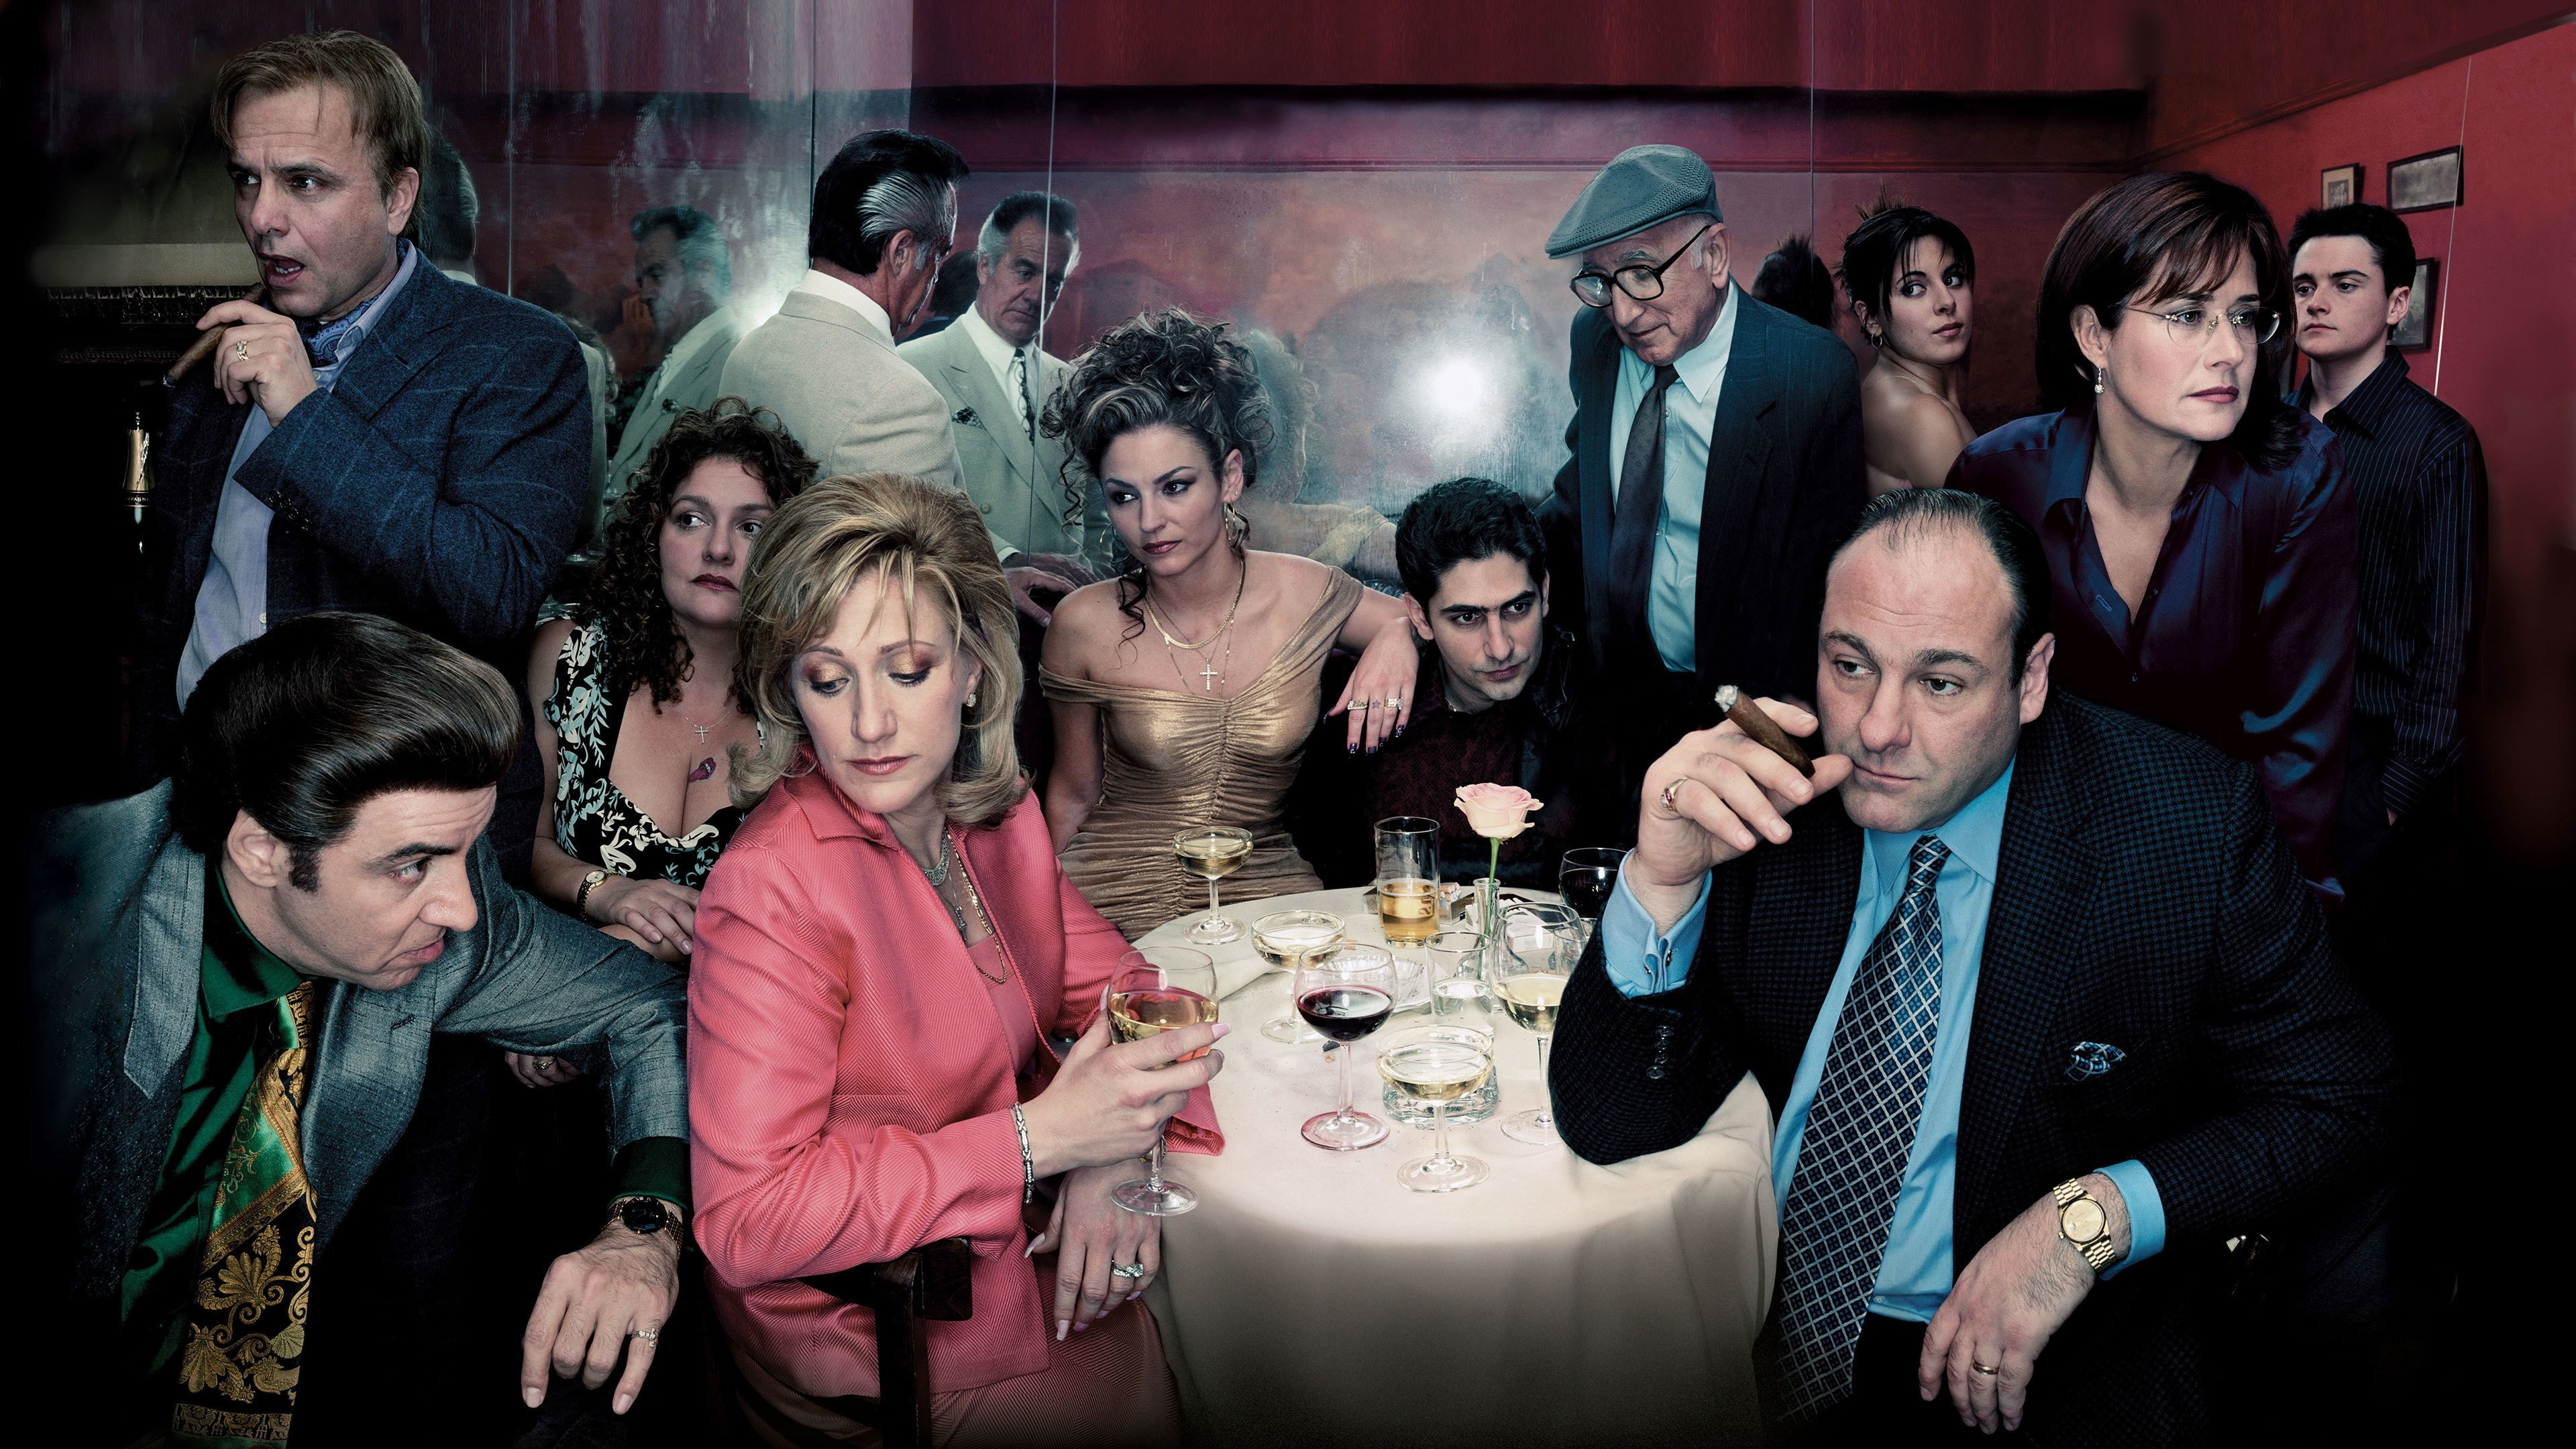 Res: 3840x2160, TV Show - The Sopranos Wallpaper